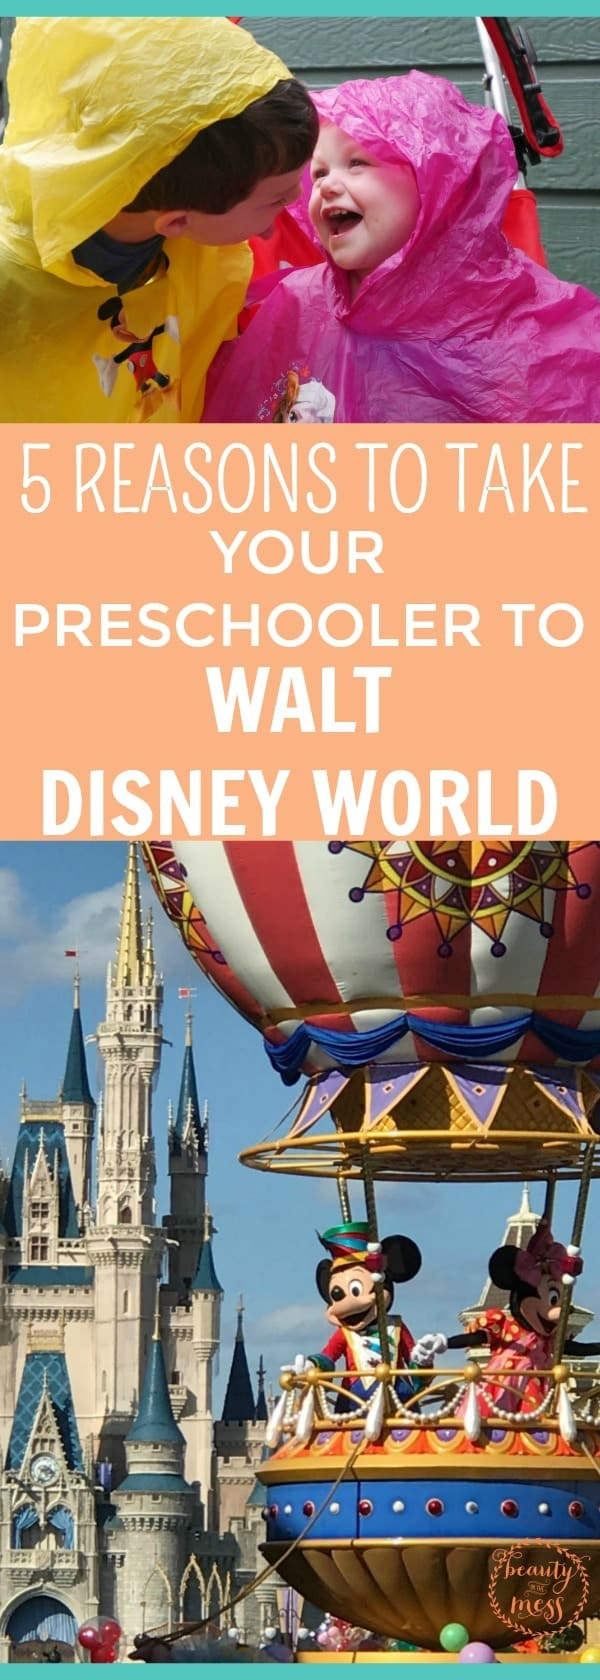 Want to plan a Walt Disney World® vacation? Have a preschooler? Are you asking yourself if you should take your preschooler to Walt Disney World®? Here's what you need to know. Don't miss these 5 reasons we don't regret taking our preschoolers and why you should consider it!